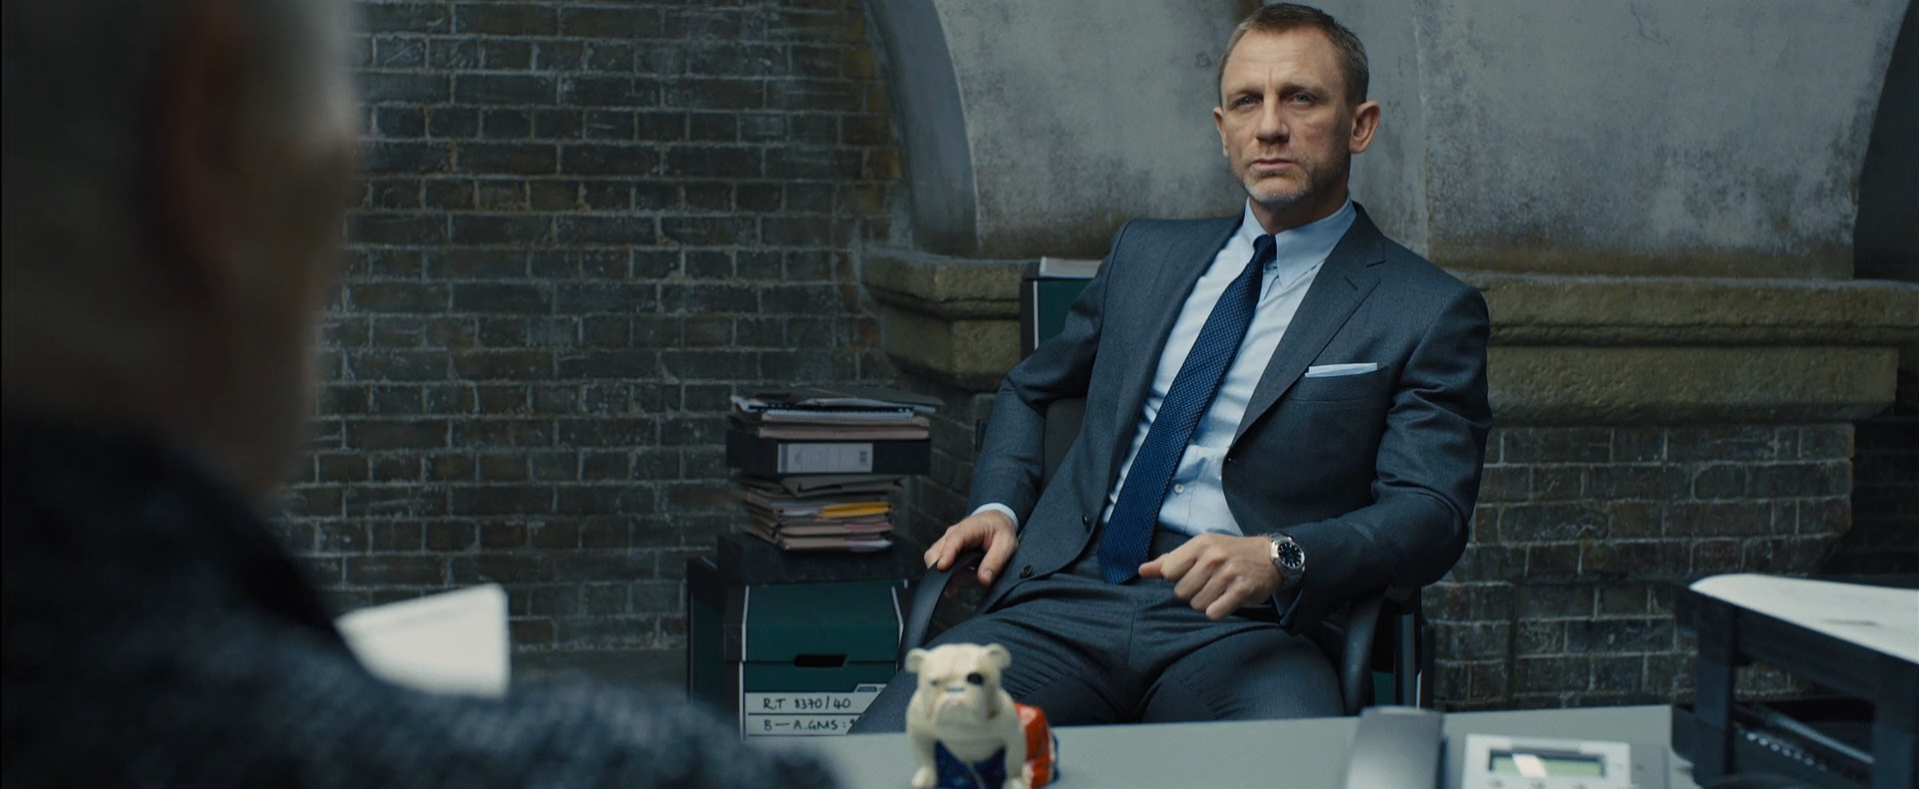 23. Skyfall.mp4 - VLC media player 2017-09-06 11.49.44.png